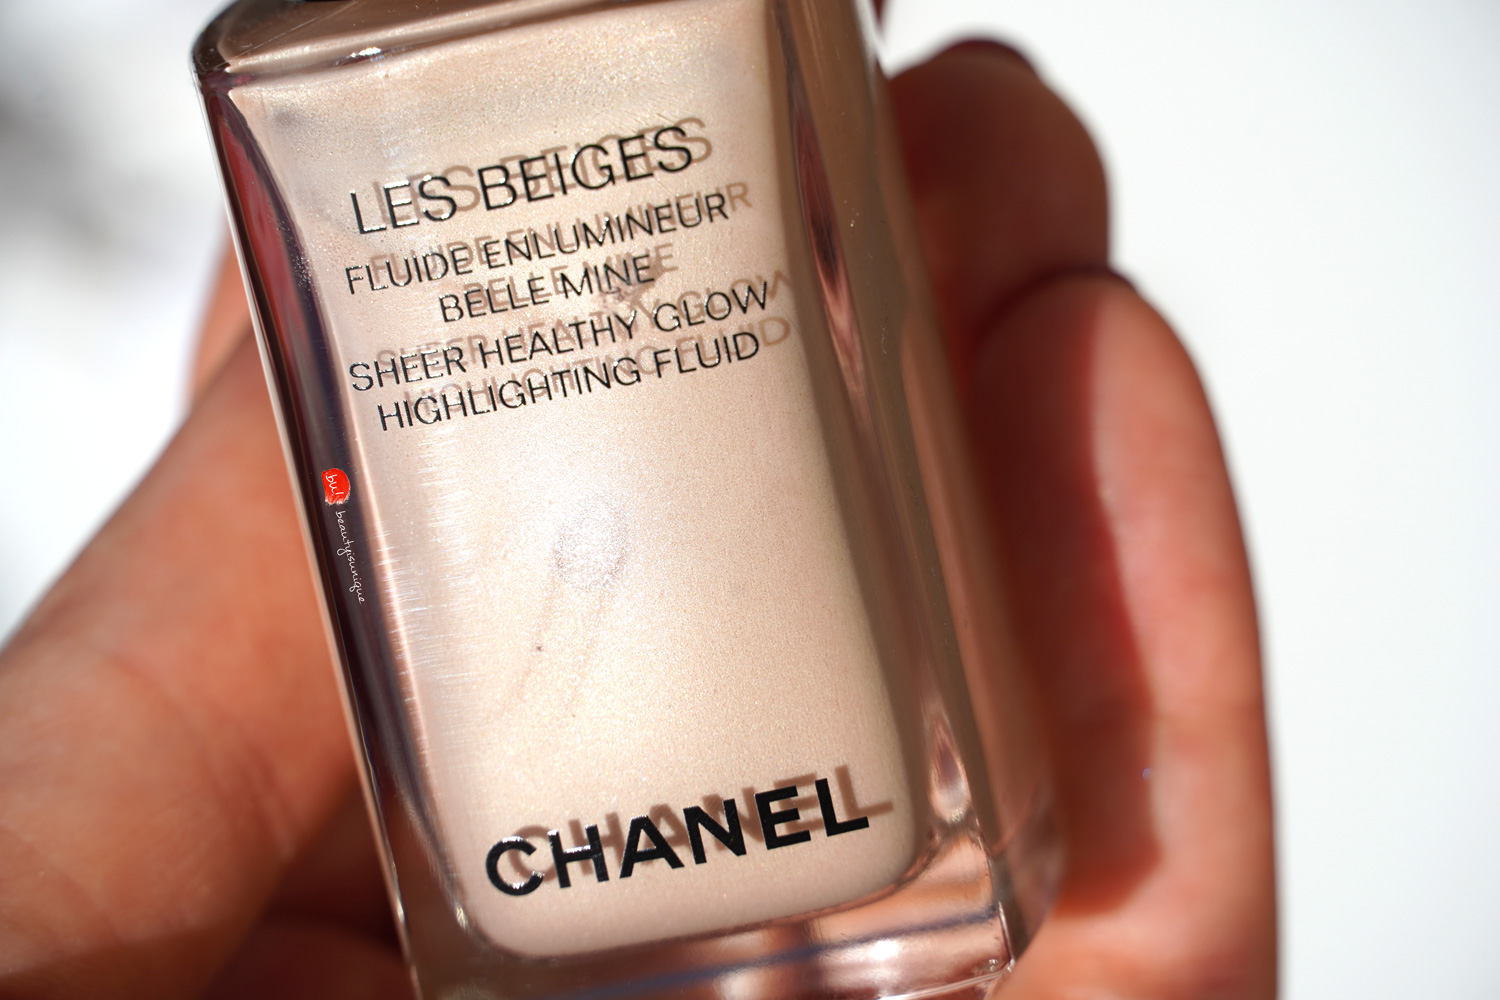 Chanel-les-beiges-sheer-healthy-glow-highlighting-fluid